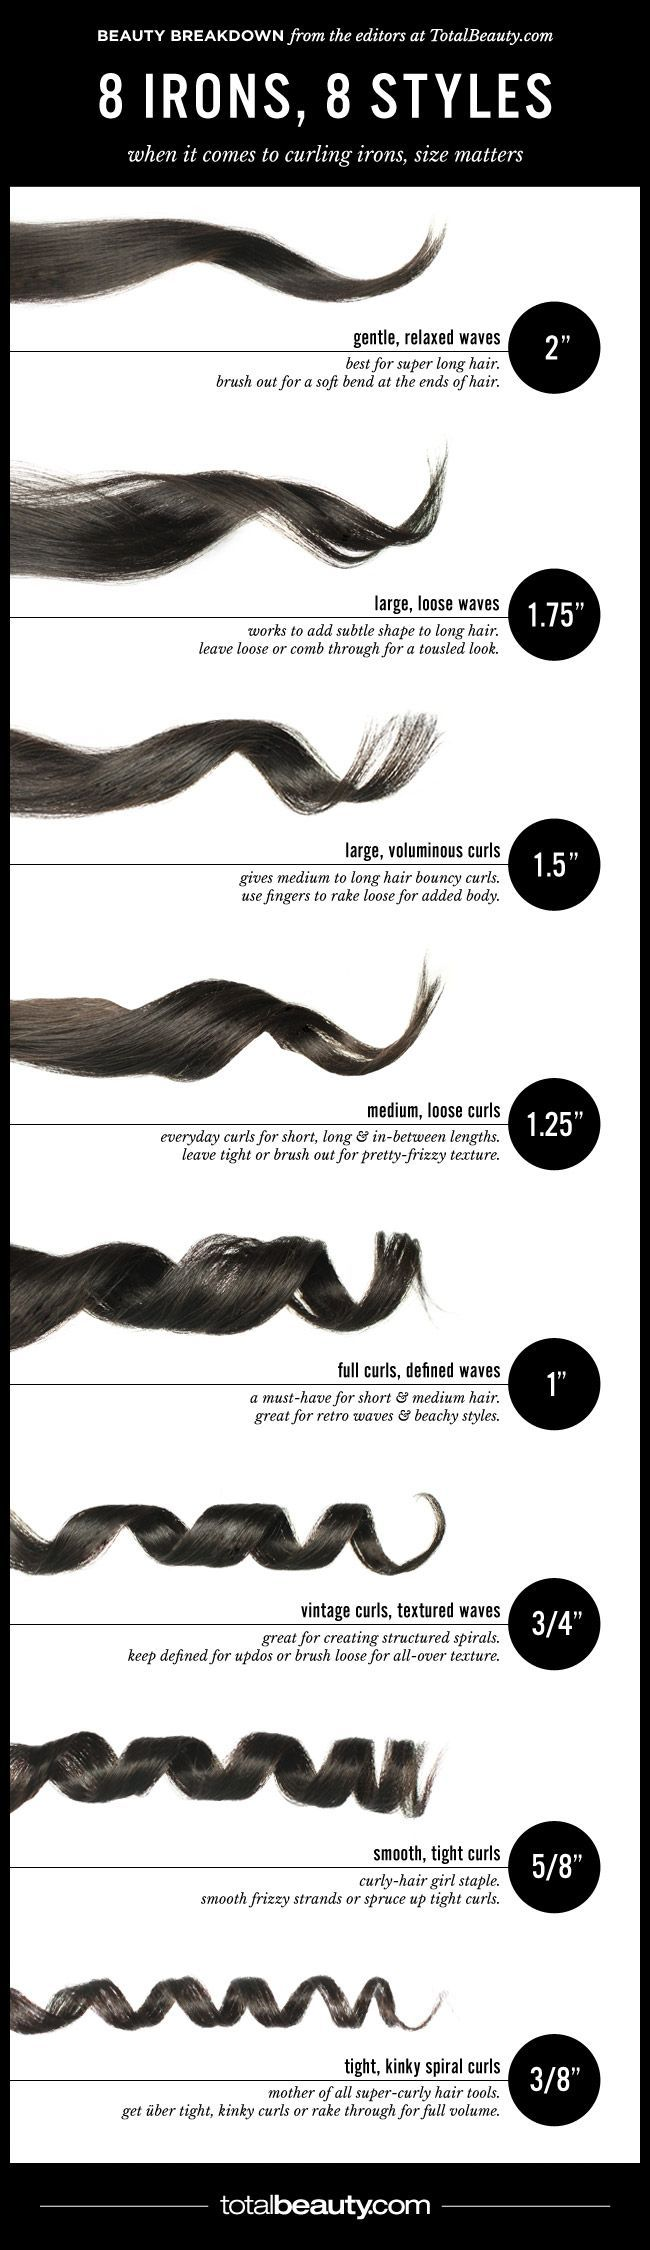 8 Irons, 8 Styles: when it comes to curling irons, size matters